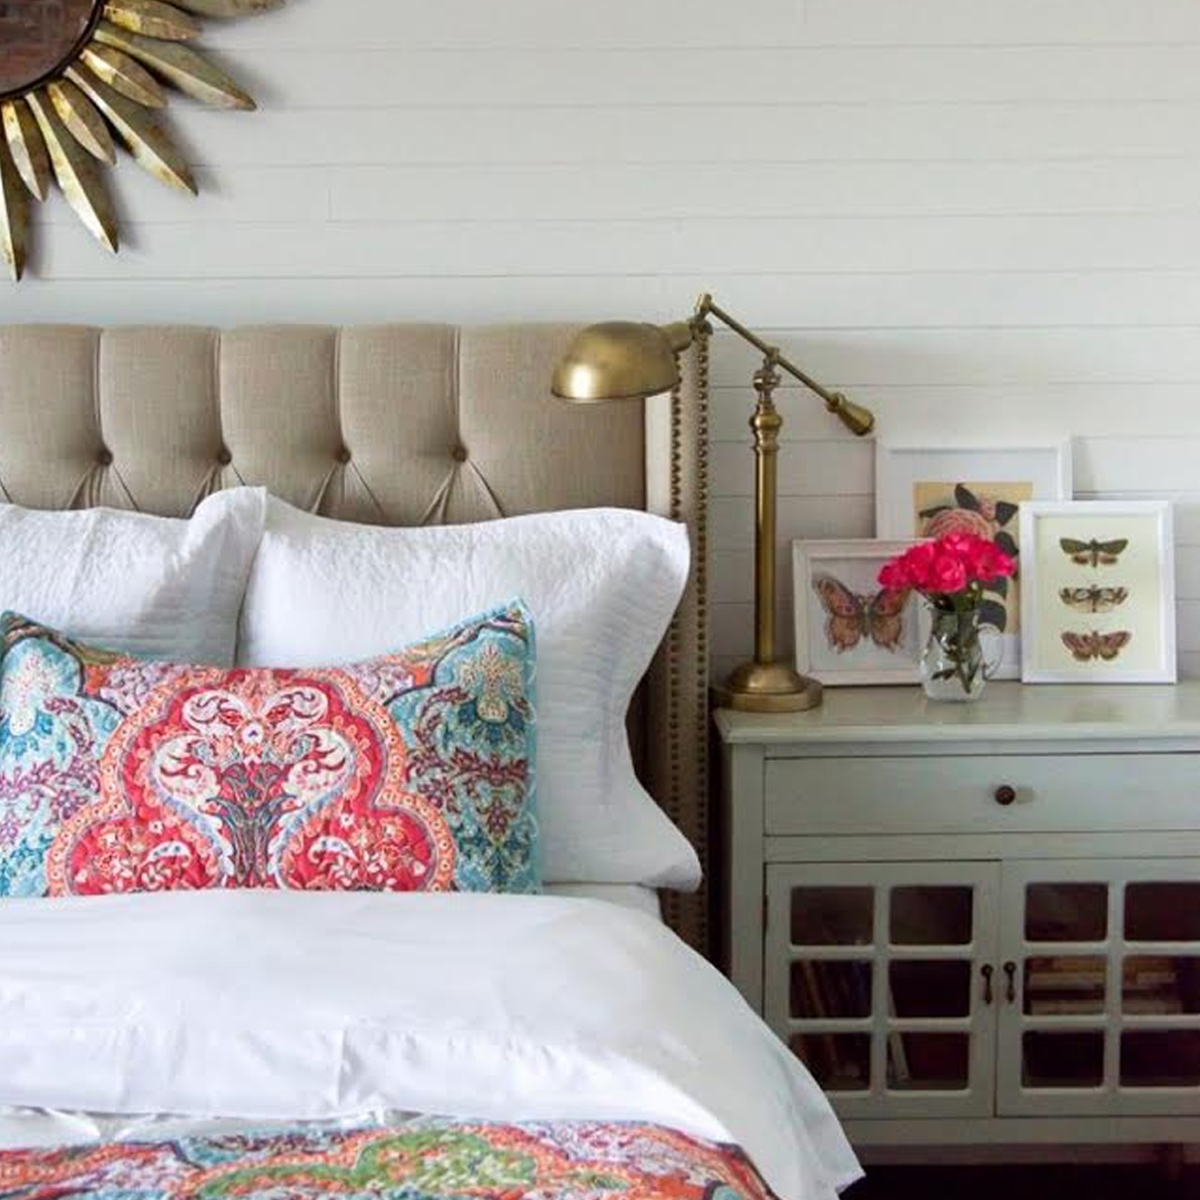 Bed with fabric headboard, white blankets, and colorful pillows photo